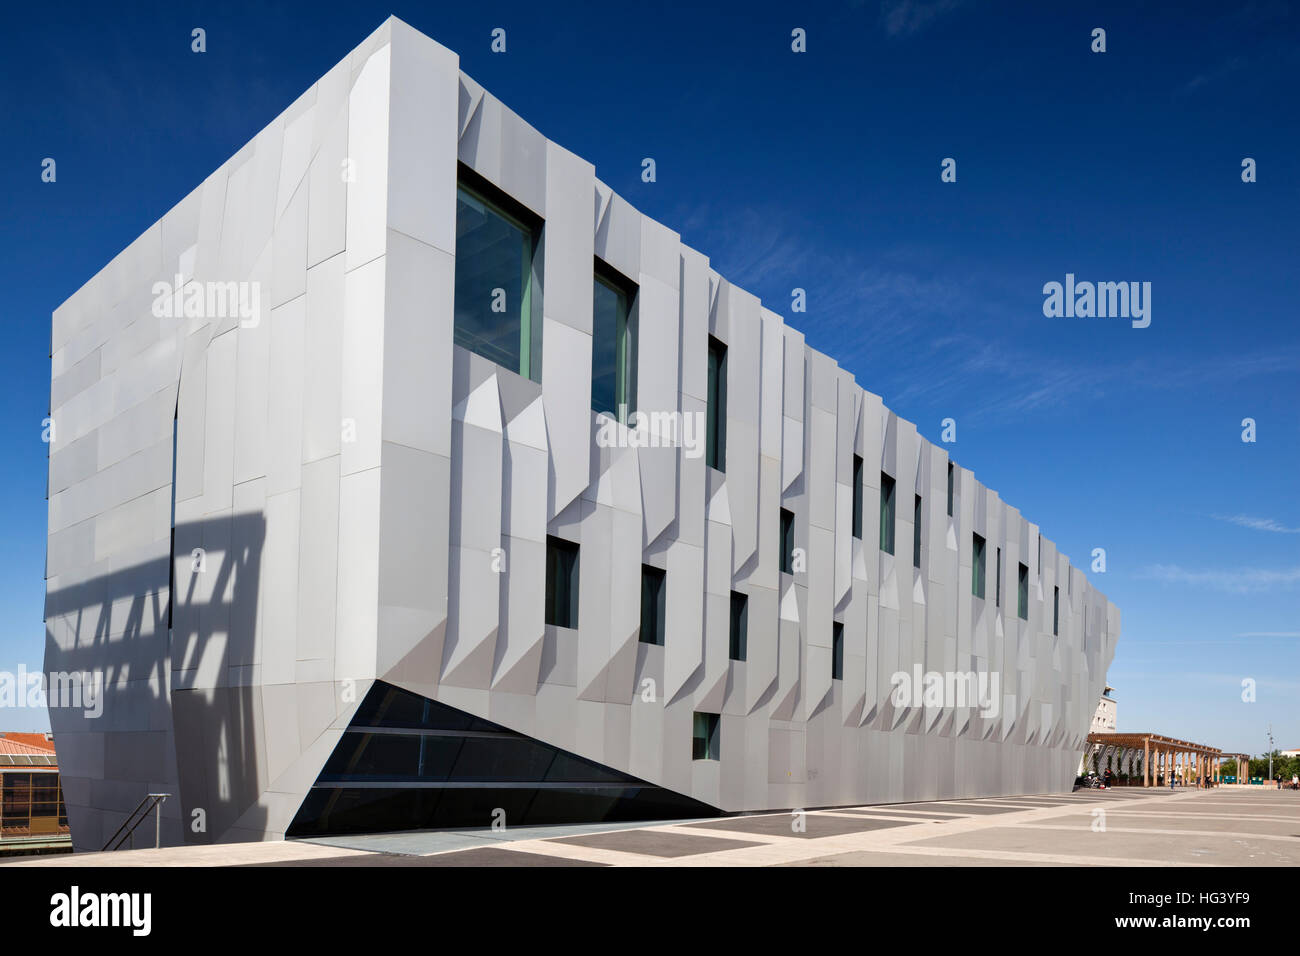 Overall view of the Darius Milhaud Conservatory of Music, Dance and Dramatic Art in Aix-en-Provence, France. - Stock Image